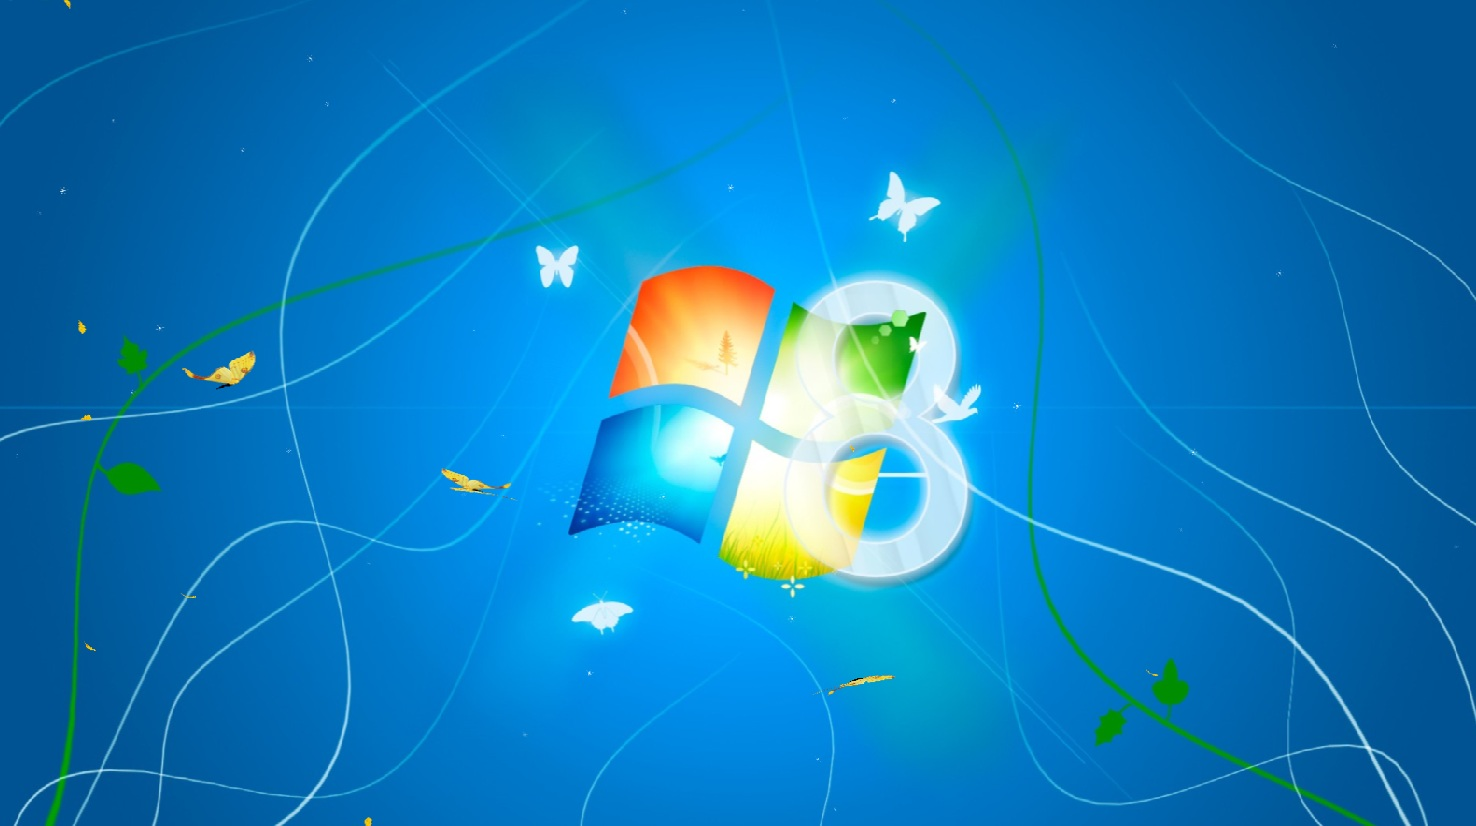 Windows 8 Light Animated Wallpaper full Windows 7 ...